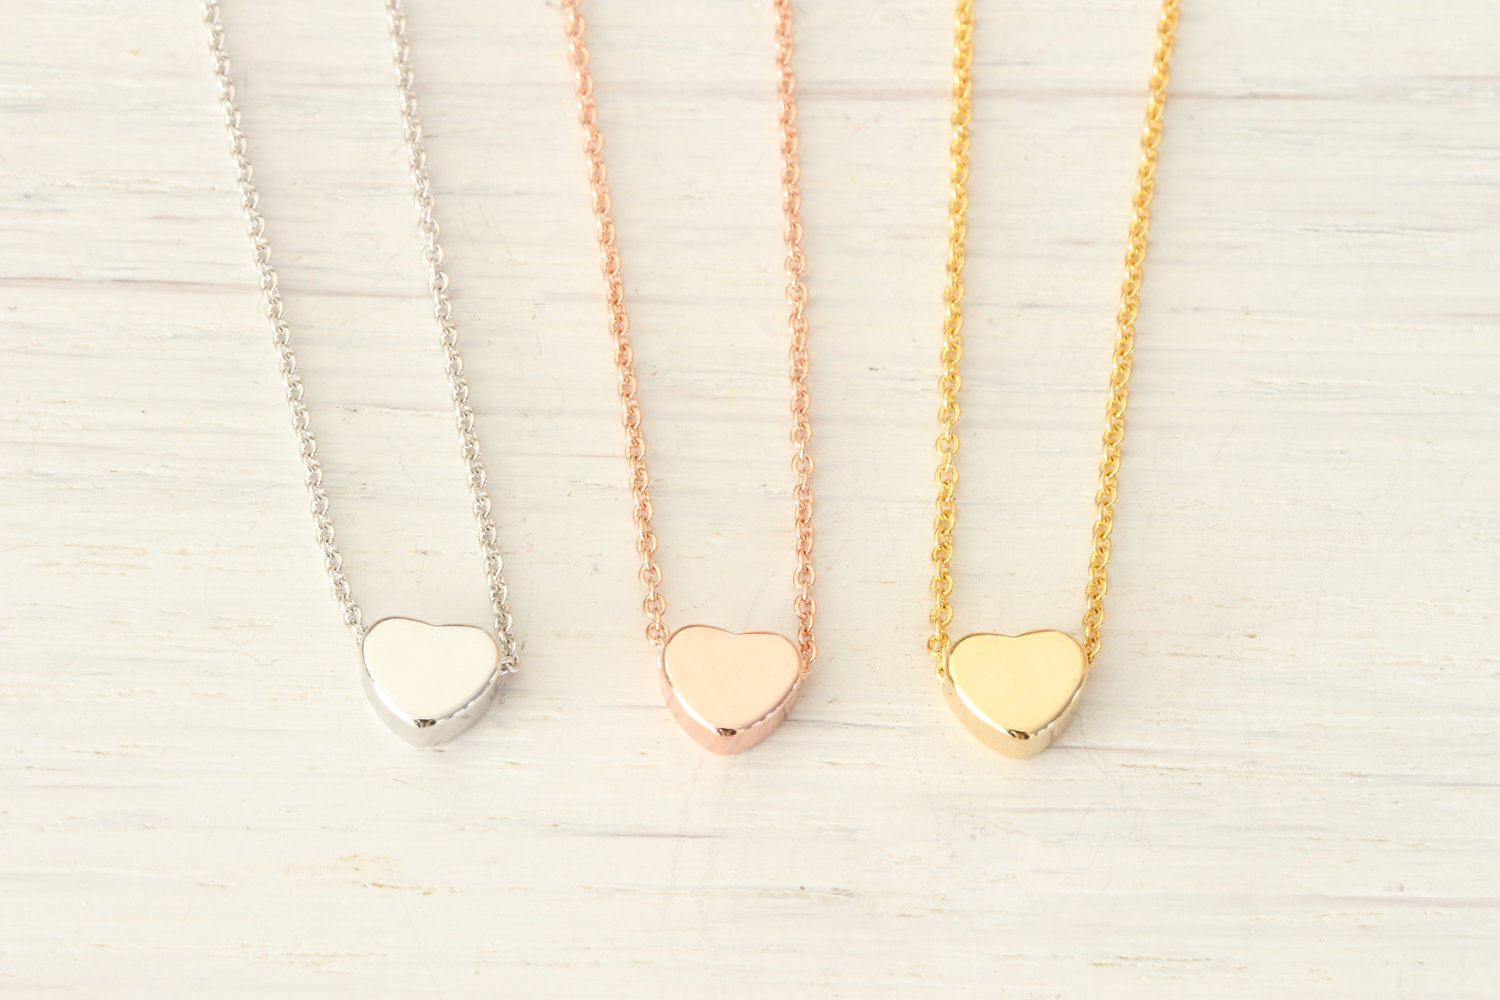 Tiny Gold, Rose Gold, Silver Heart Necklace, Initial Minimalist Simple Dainty Delicate Everyday, Gift for her Best friend Kids Name - product_type] - Beautiz